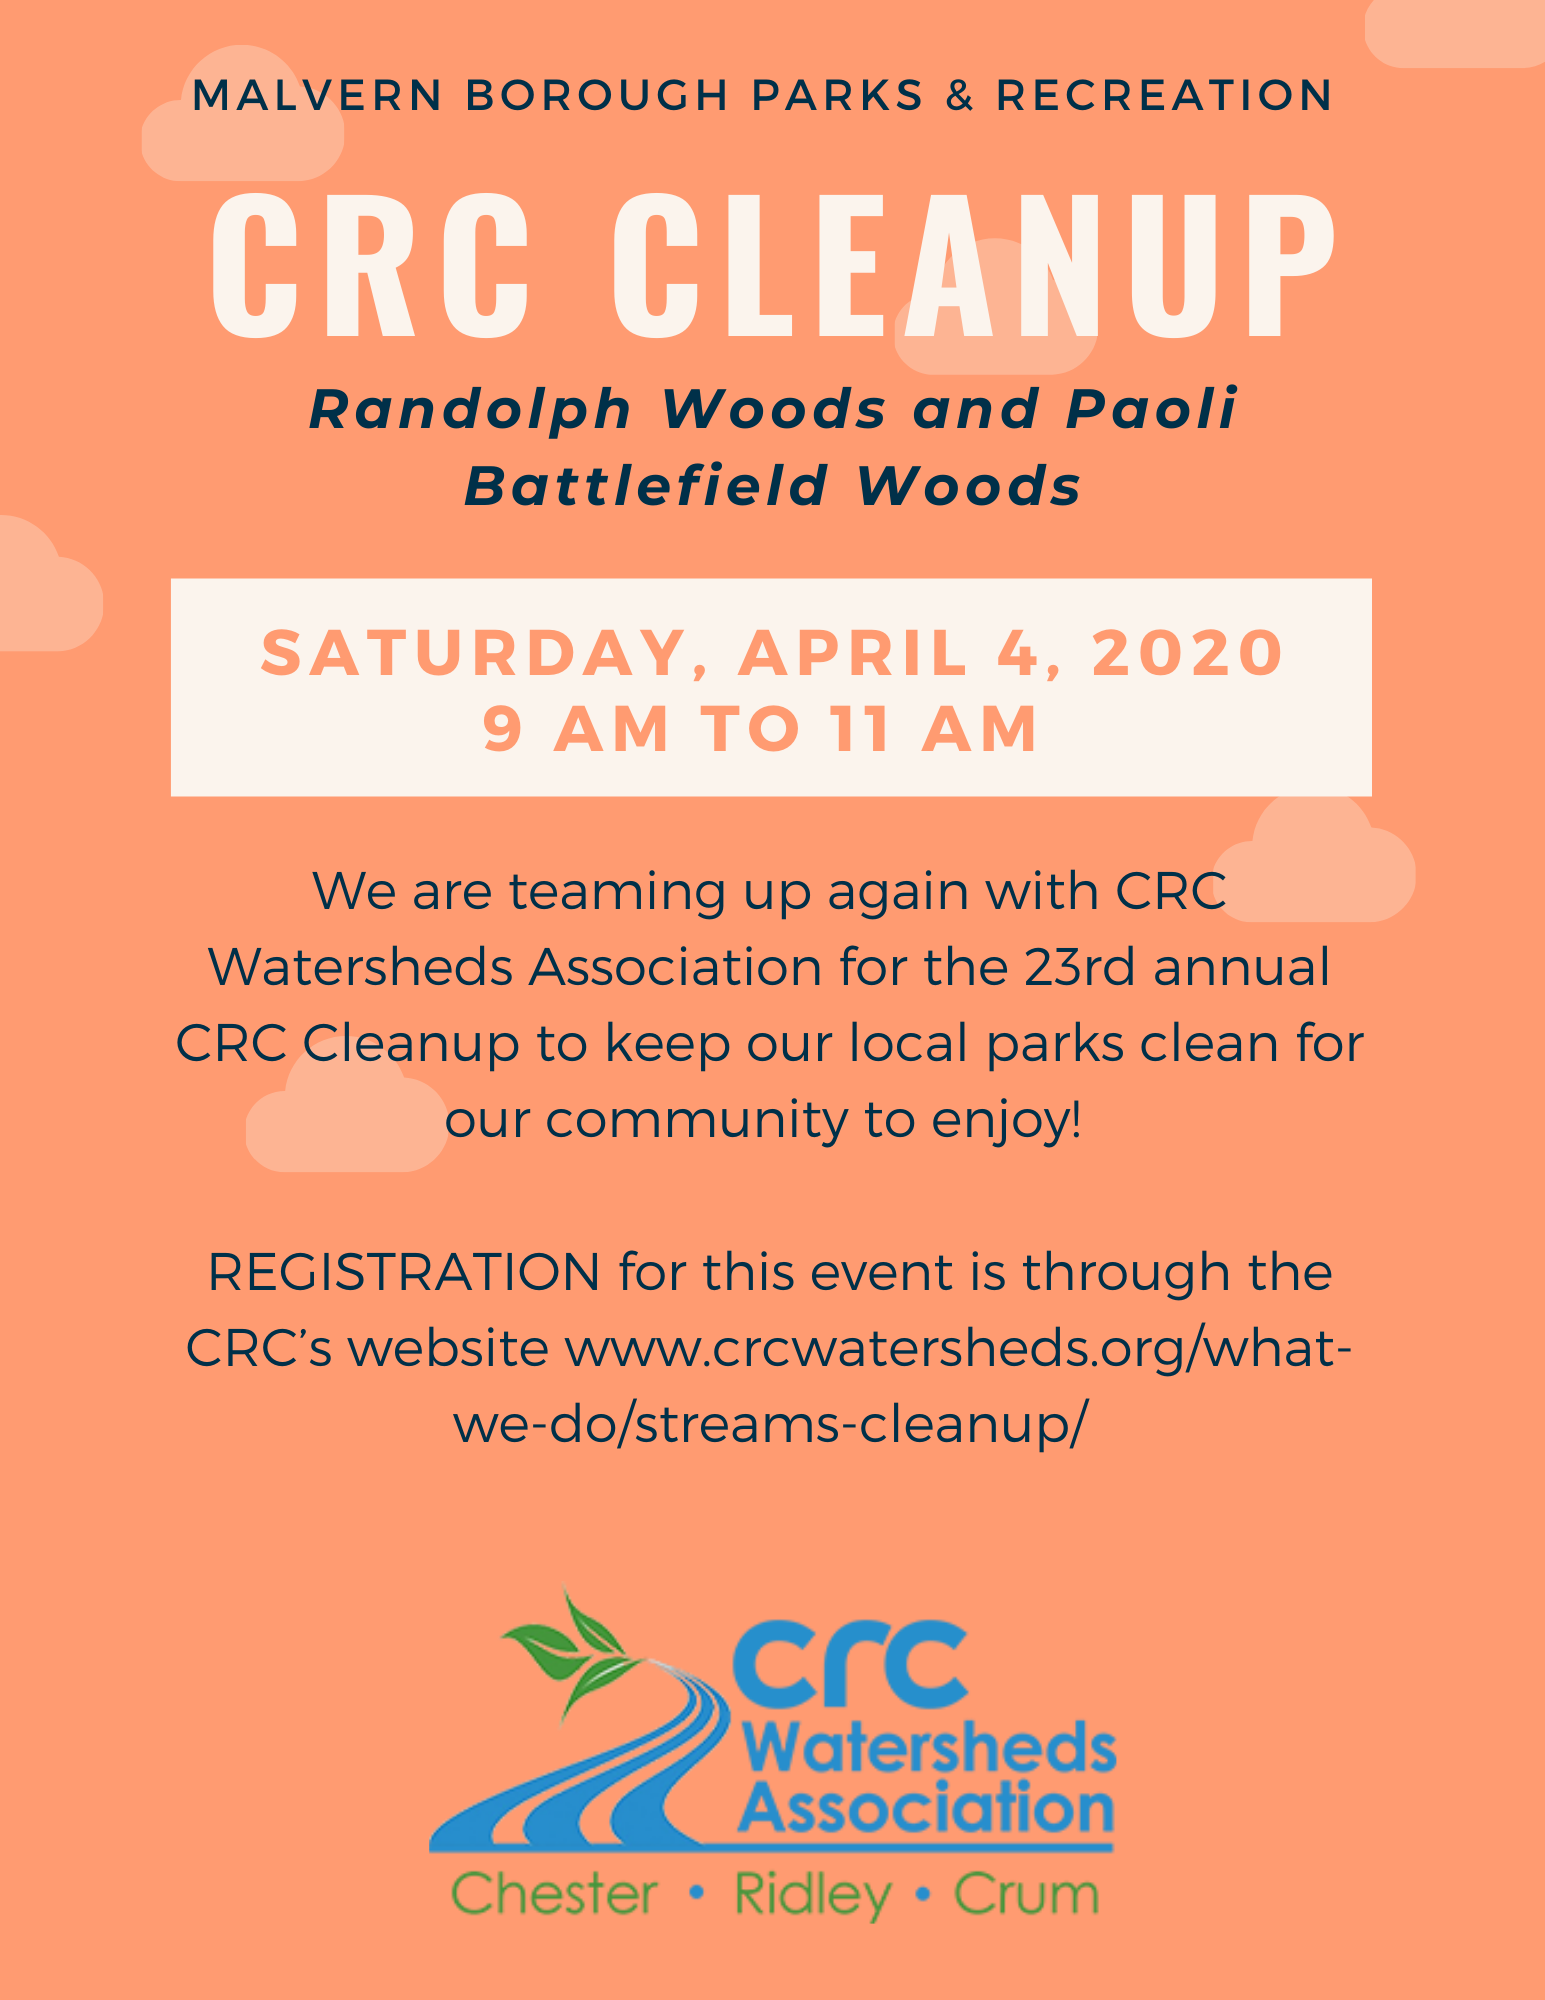 CRC Cleanup